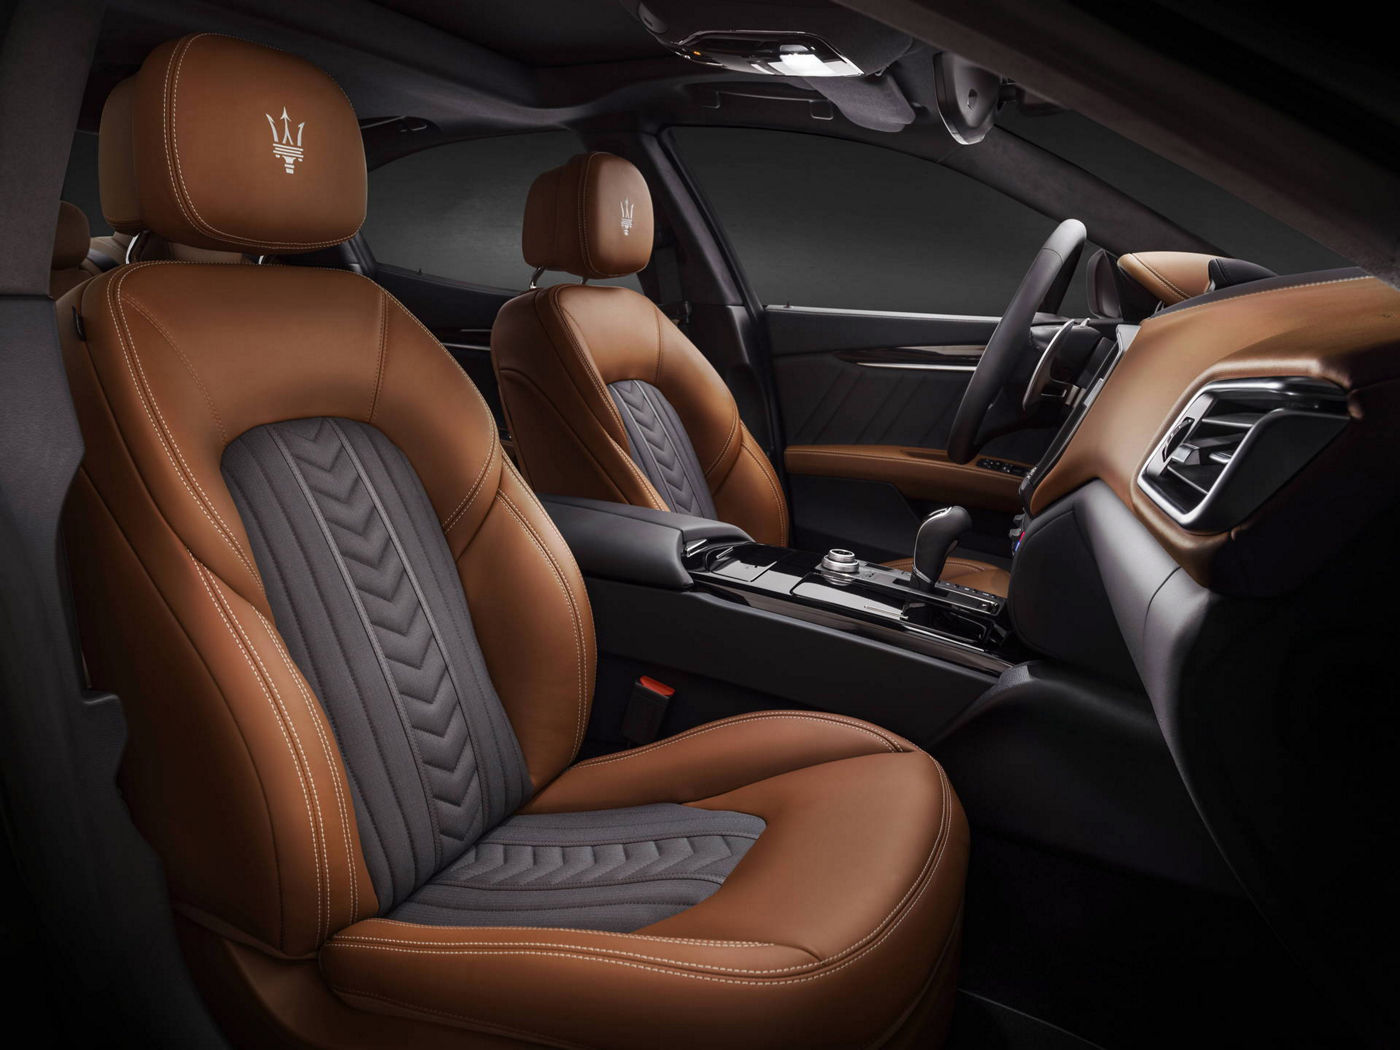 Black and brown seats design by Ermenegildo Zegna - Maserati Ghibli GranLusso